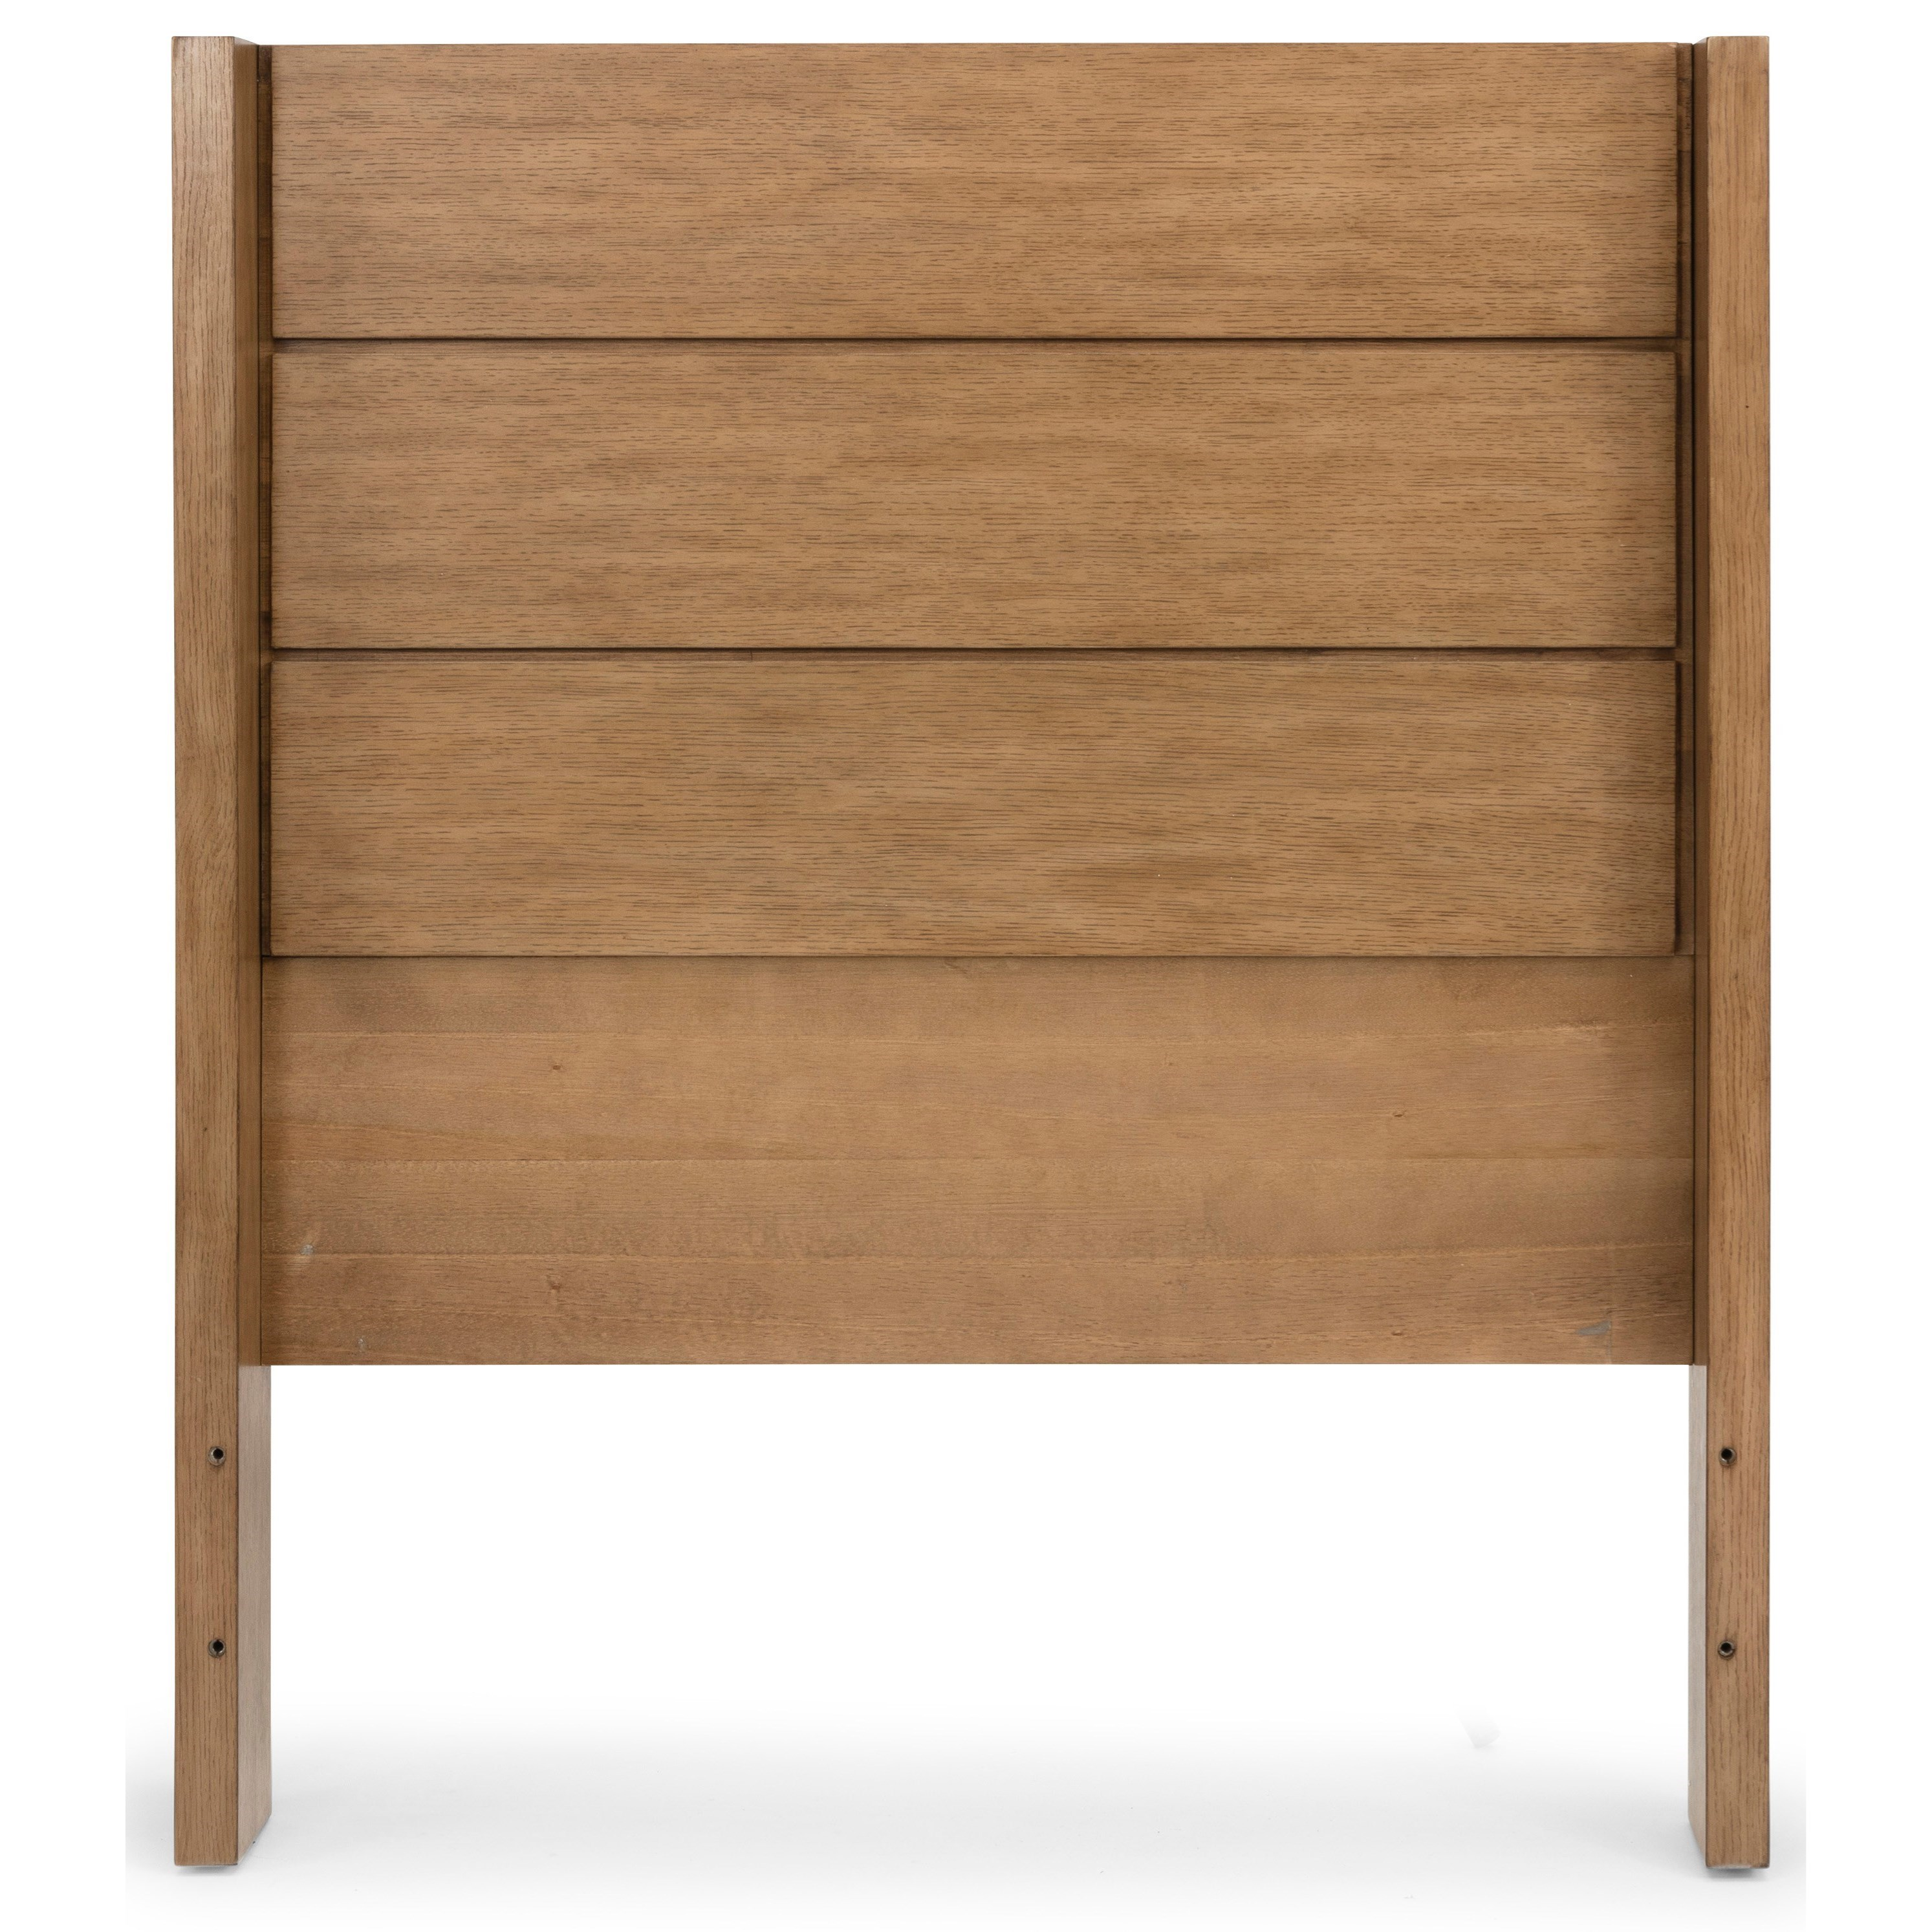 Big Sur Twin Headboard by Homestyles at Northeast Factory Direct